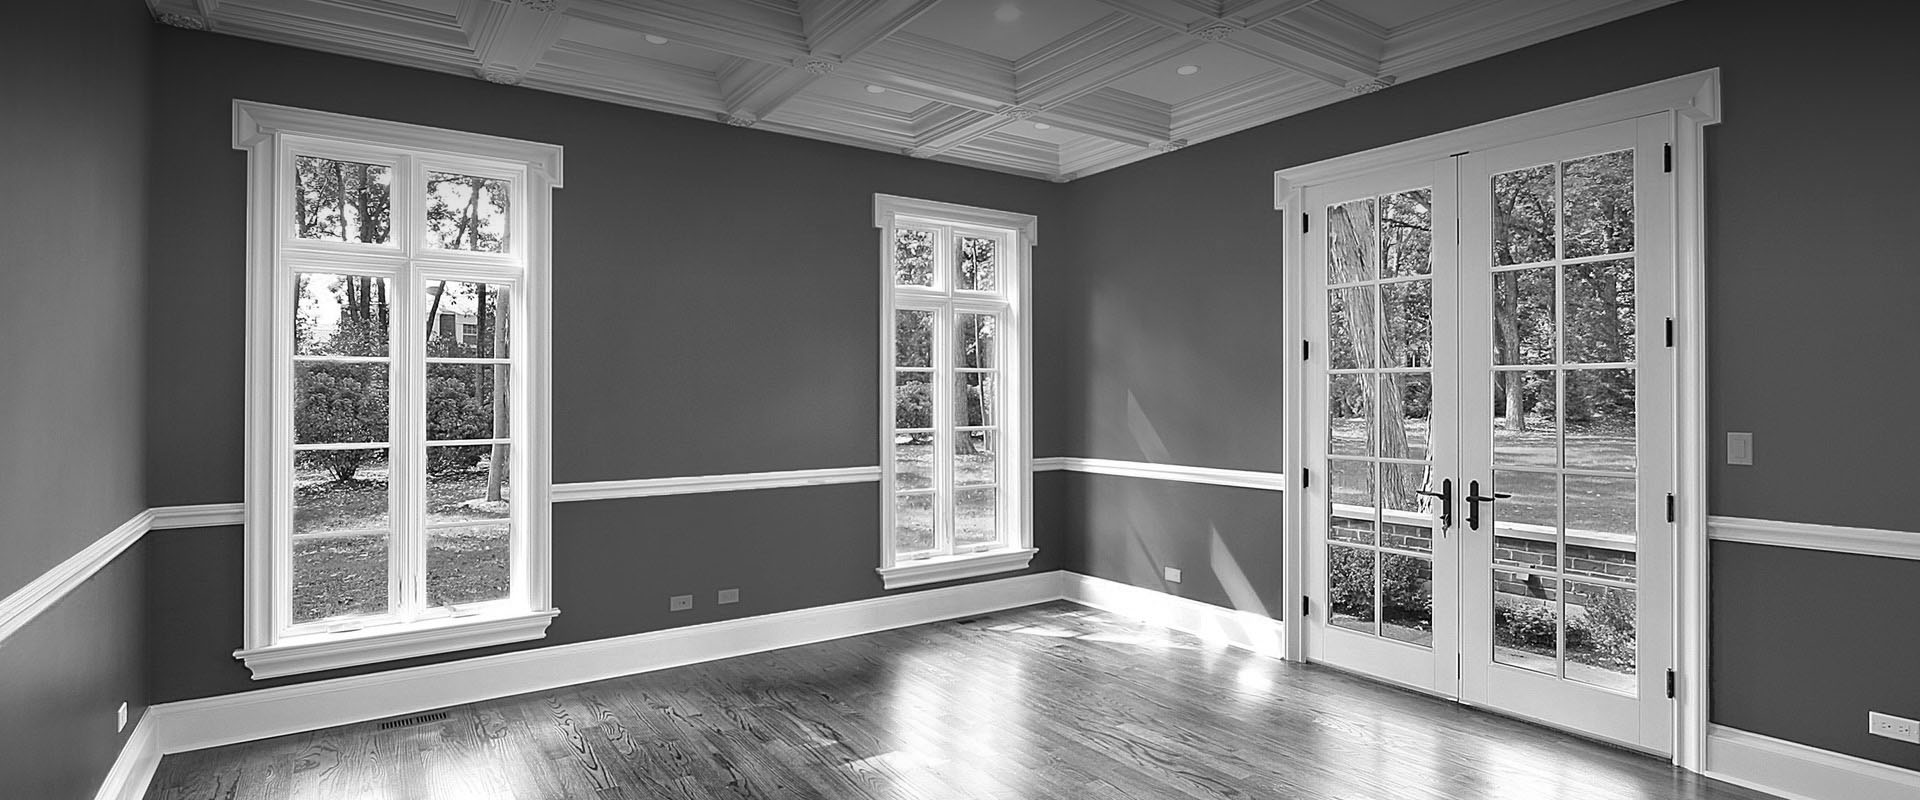 Interior painting services in Nanaimo BC